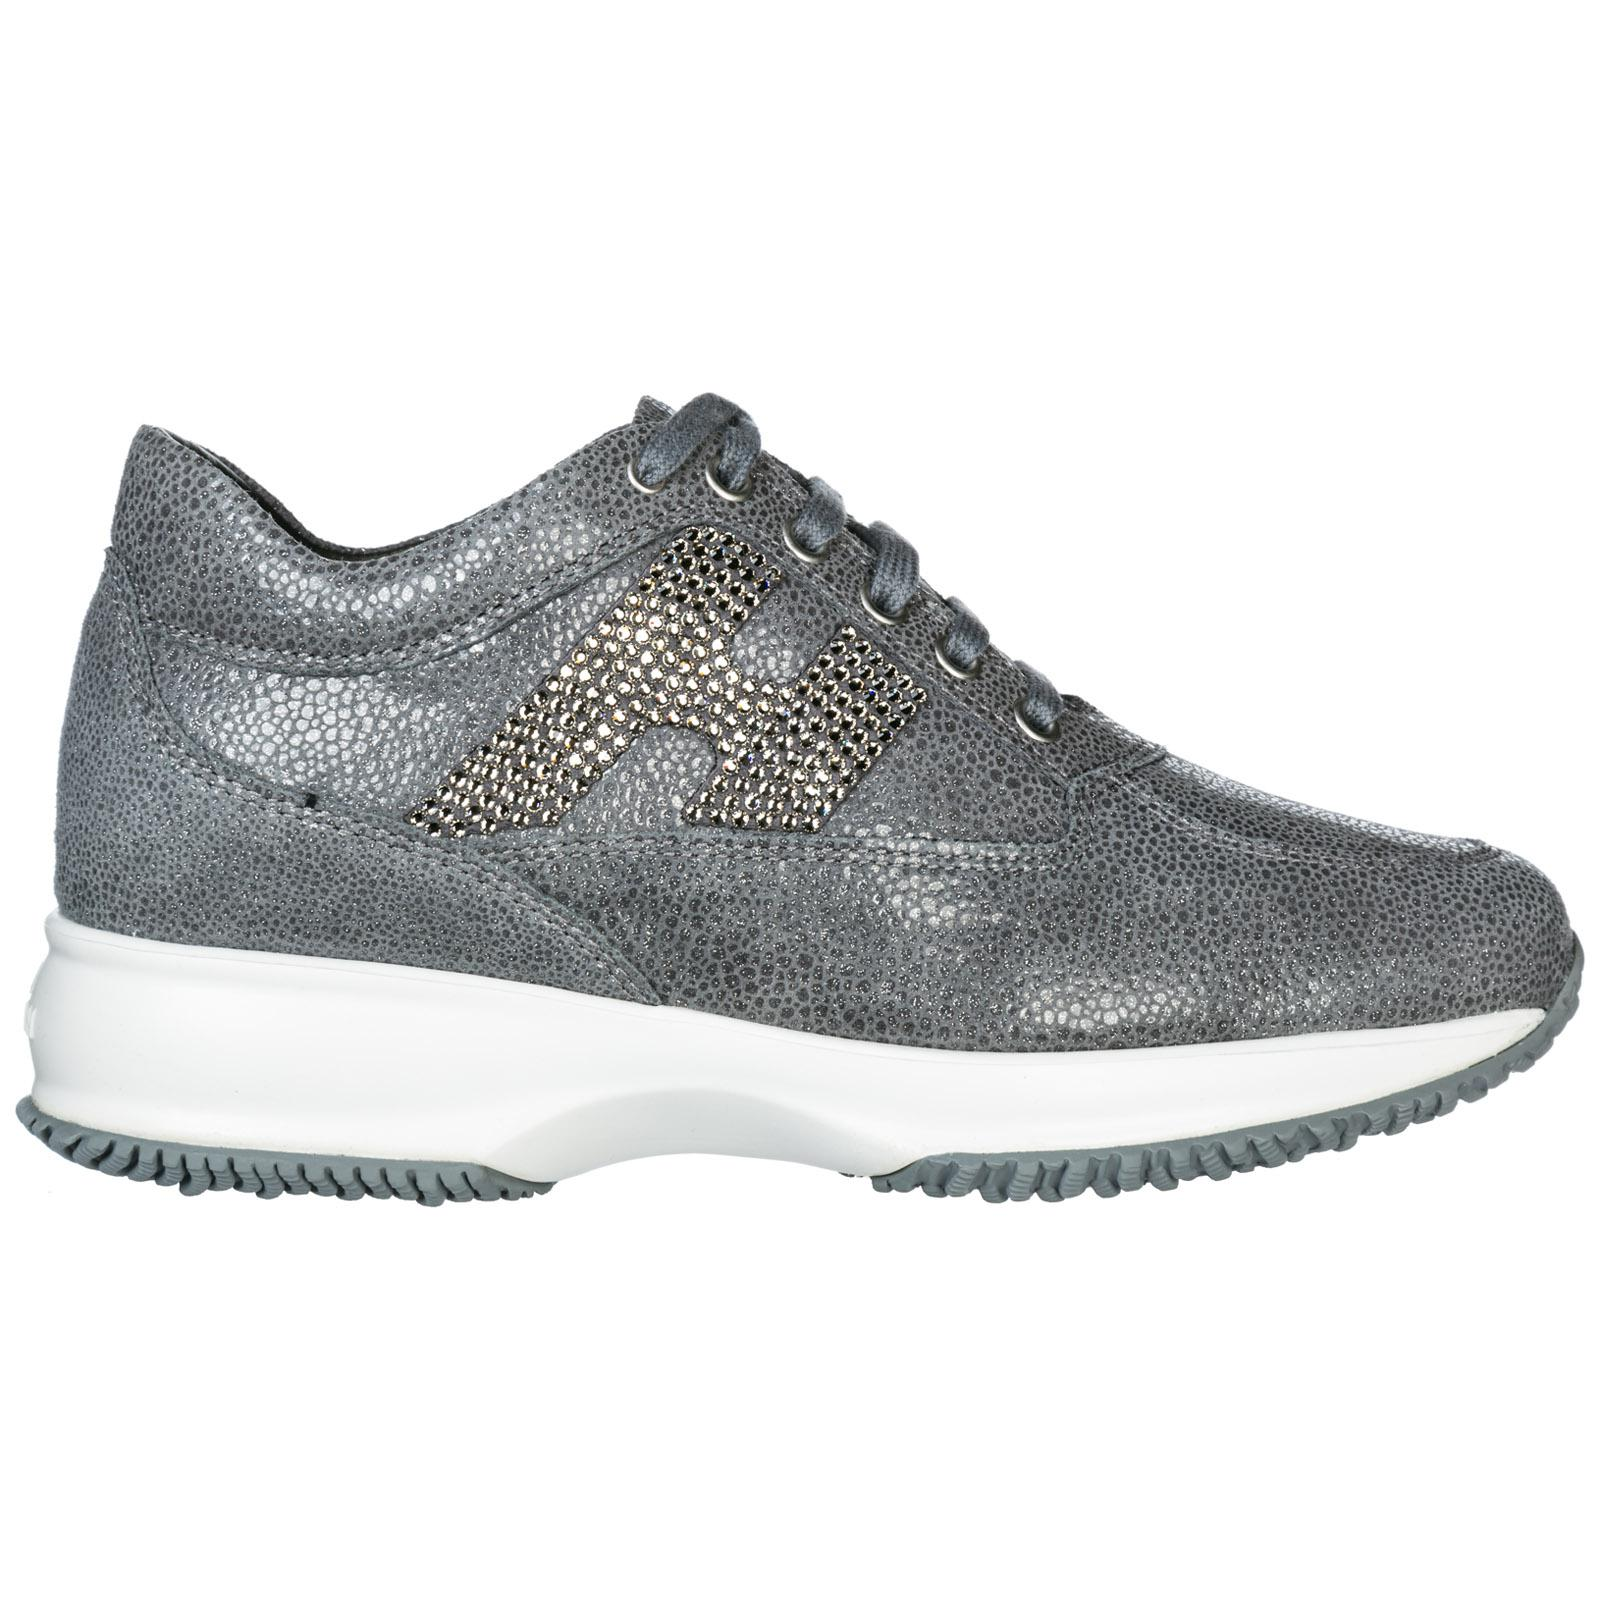 Hogan Shoes Leather Trainers Sneakers in Gray - Lyst 40c3a07d235